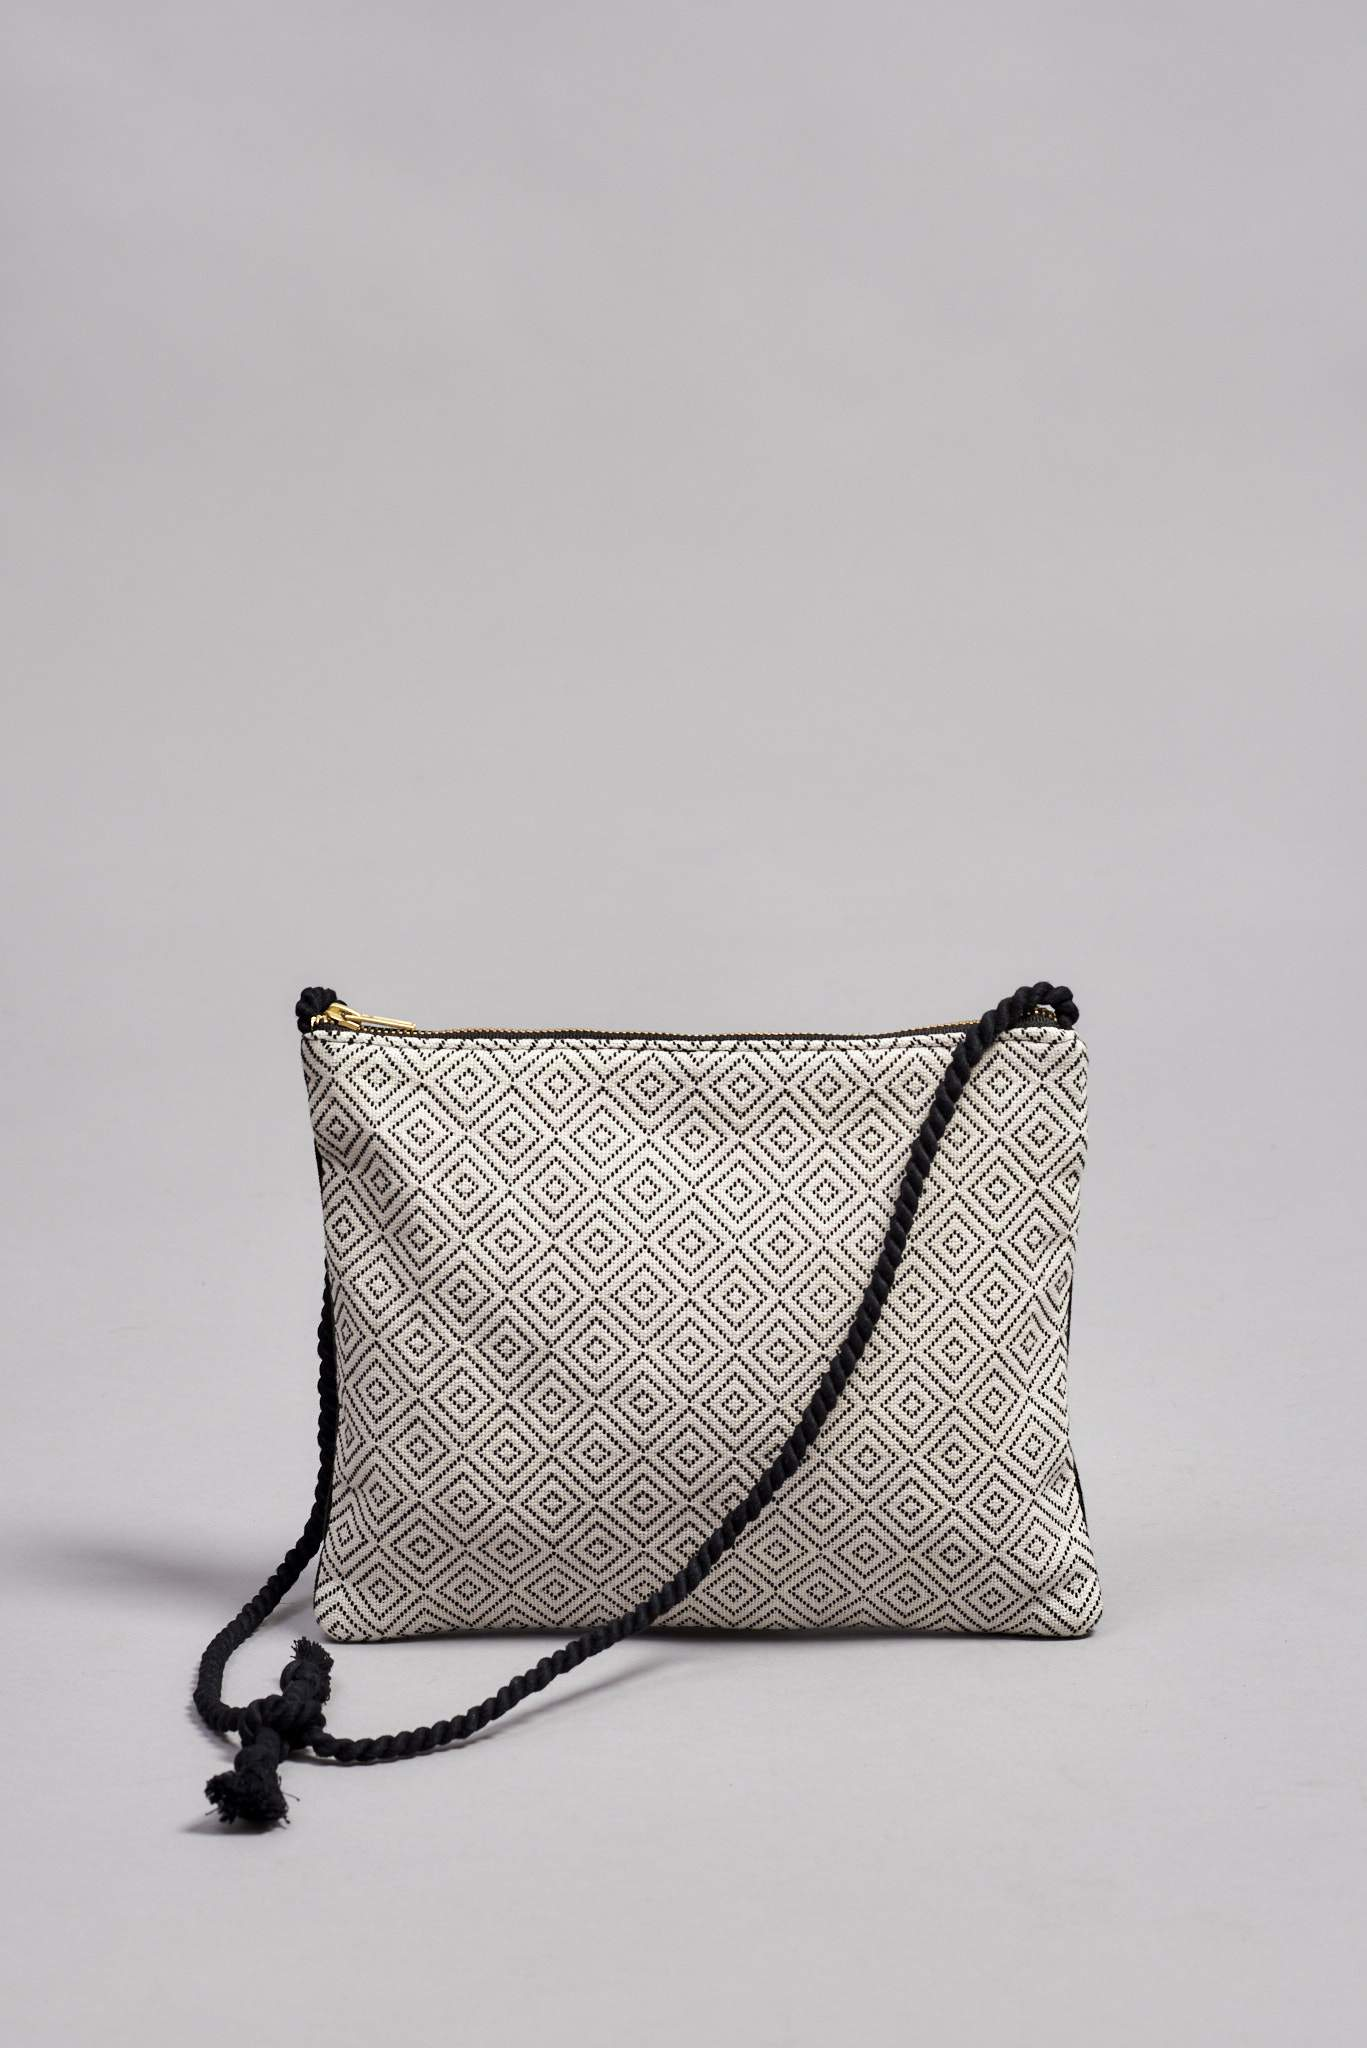 DIAMOND SHOULDER CLUTCH ANGELITA